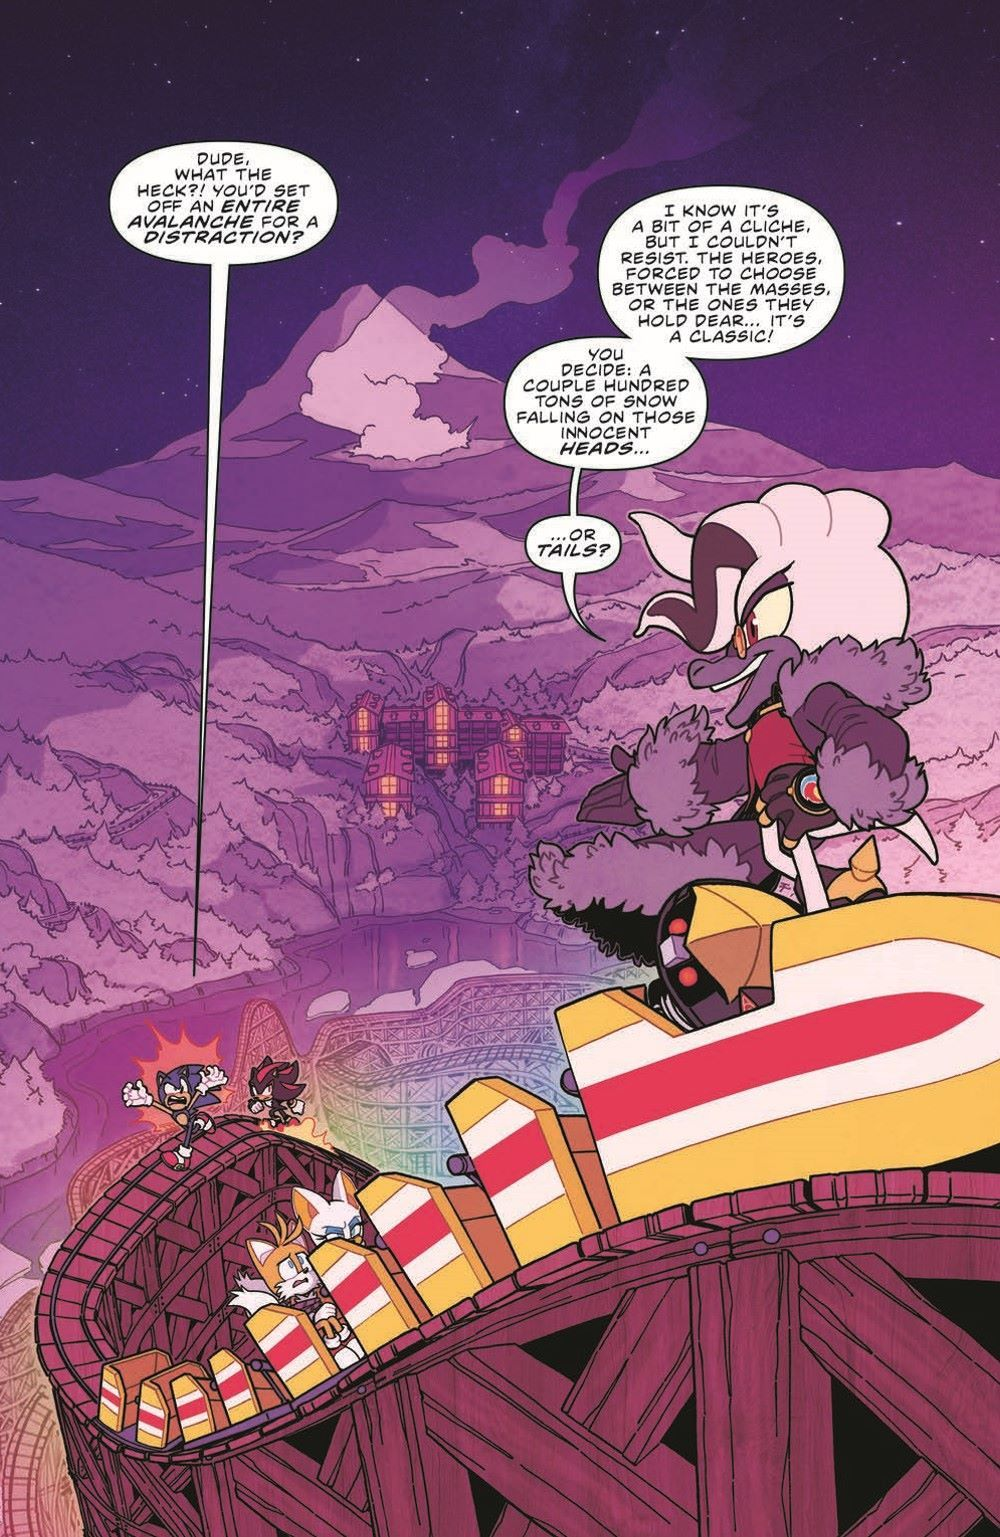 STH36_pr-3 ComicList Previews: SONIC THE HEDGEHOG #36